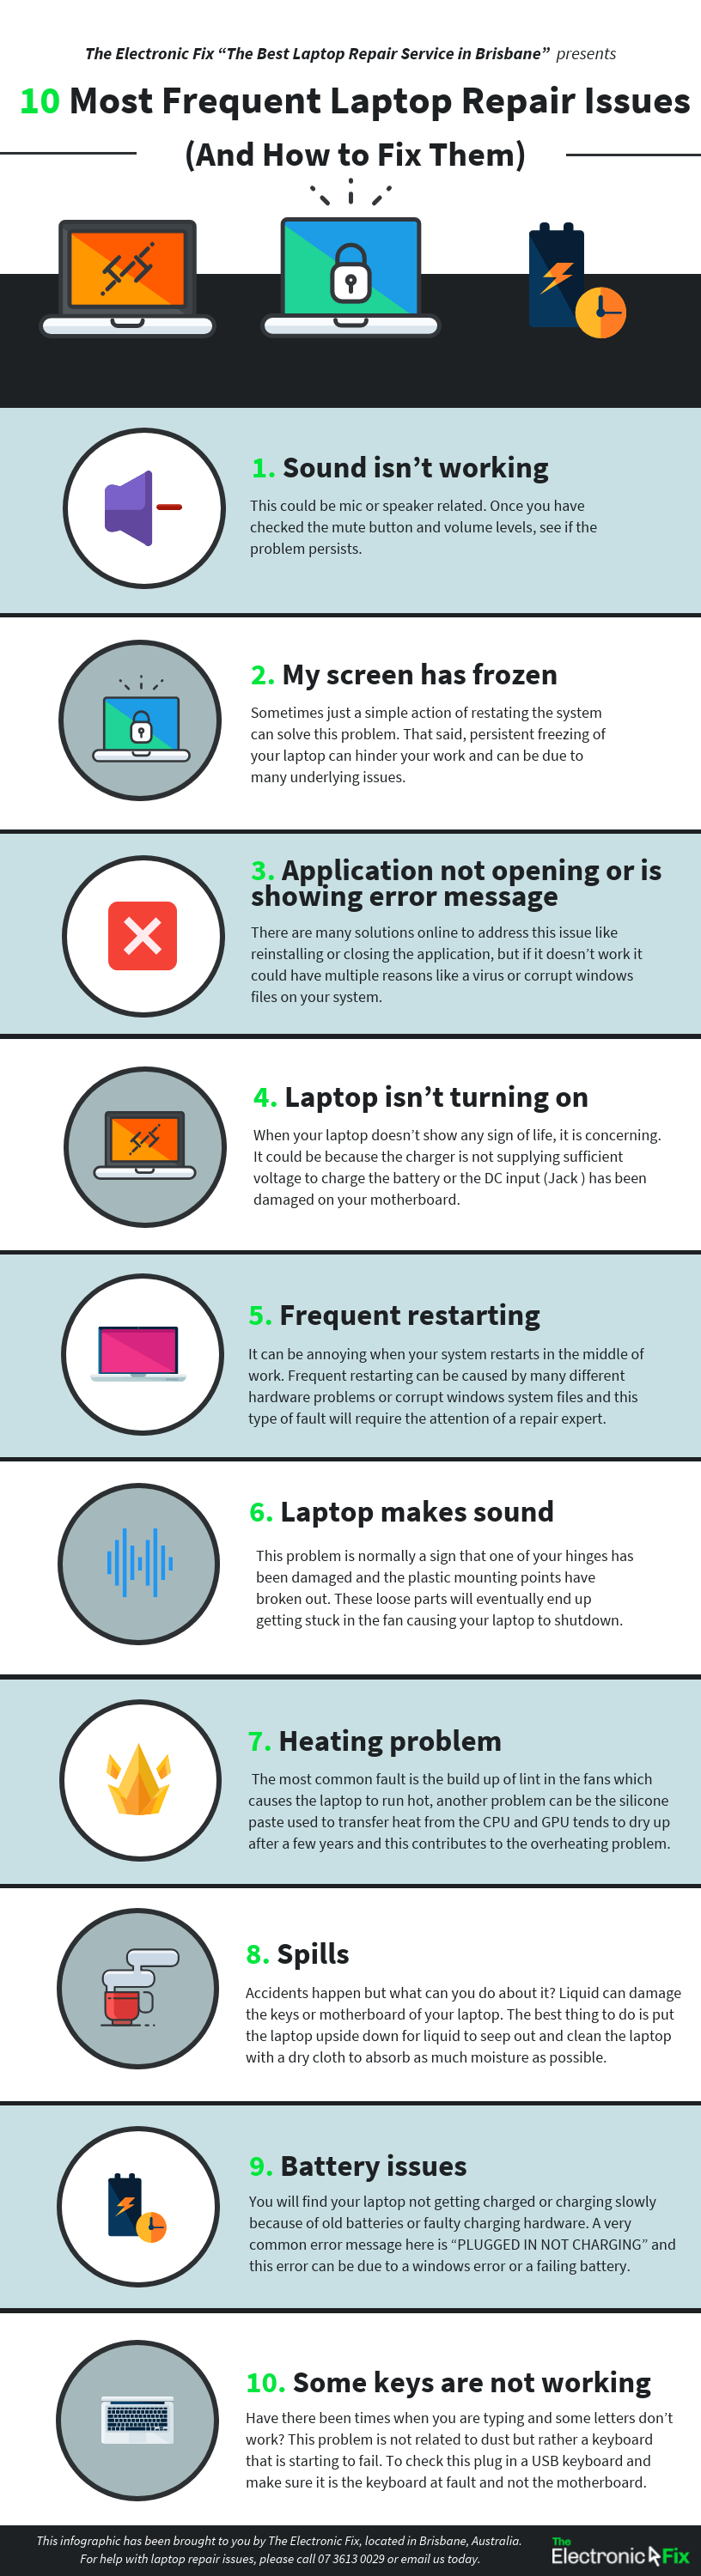 10 Most Frequent Laptop Repair Issues (And How to Fix Them)